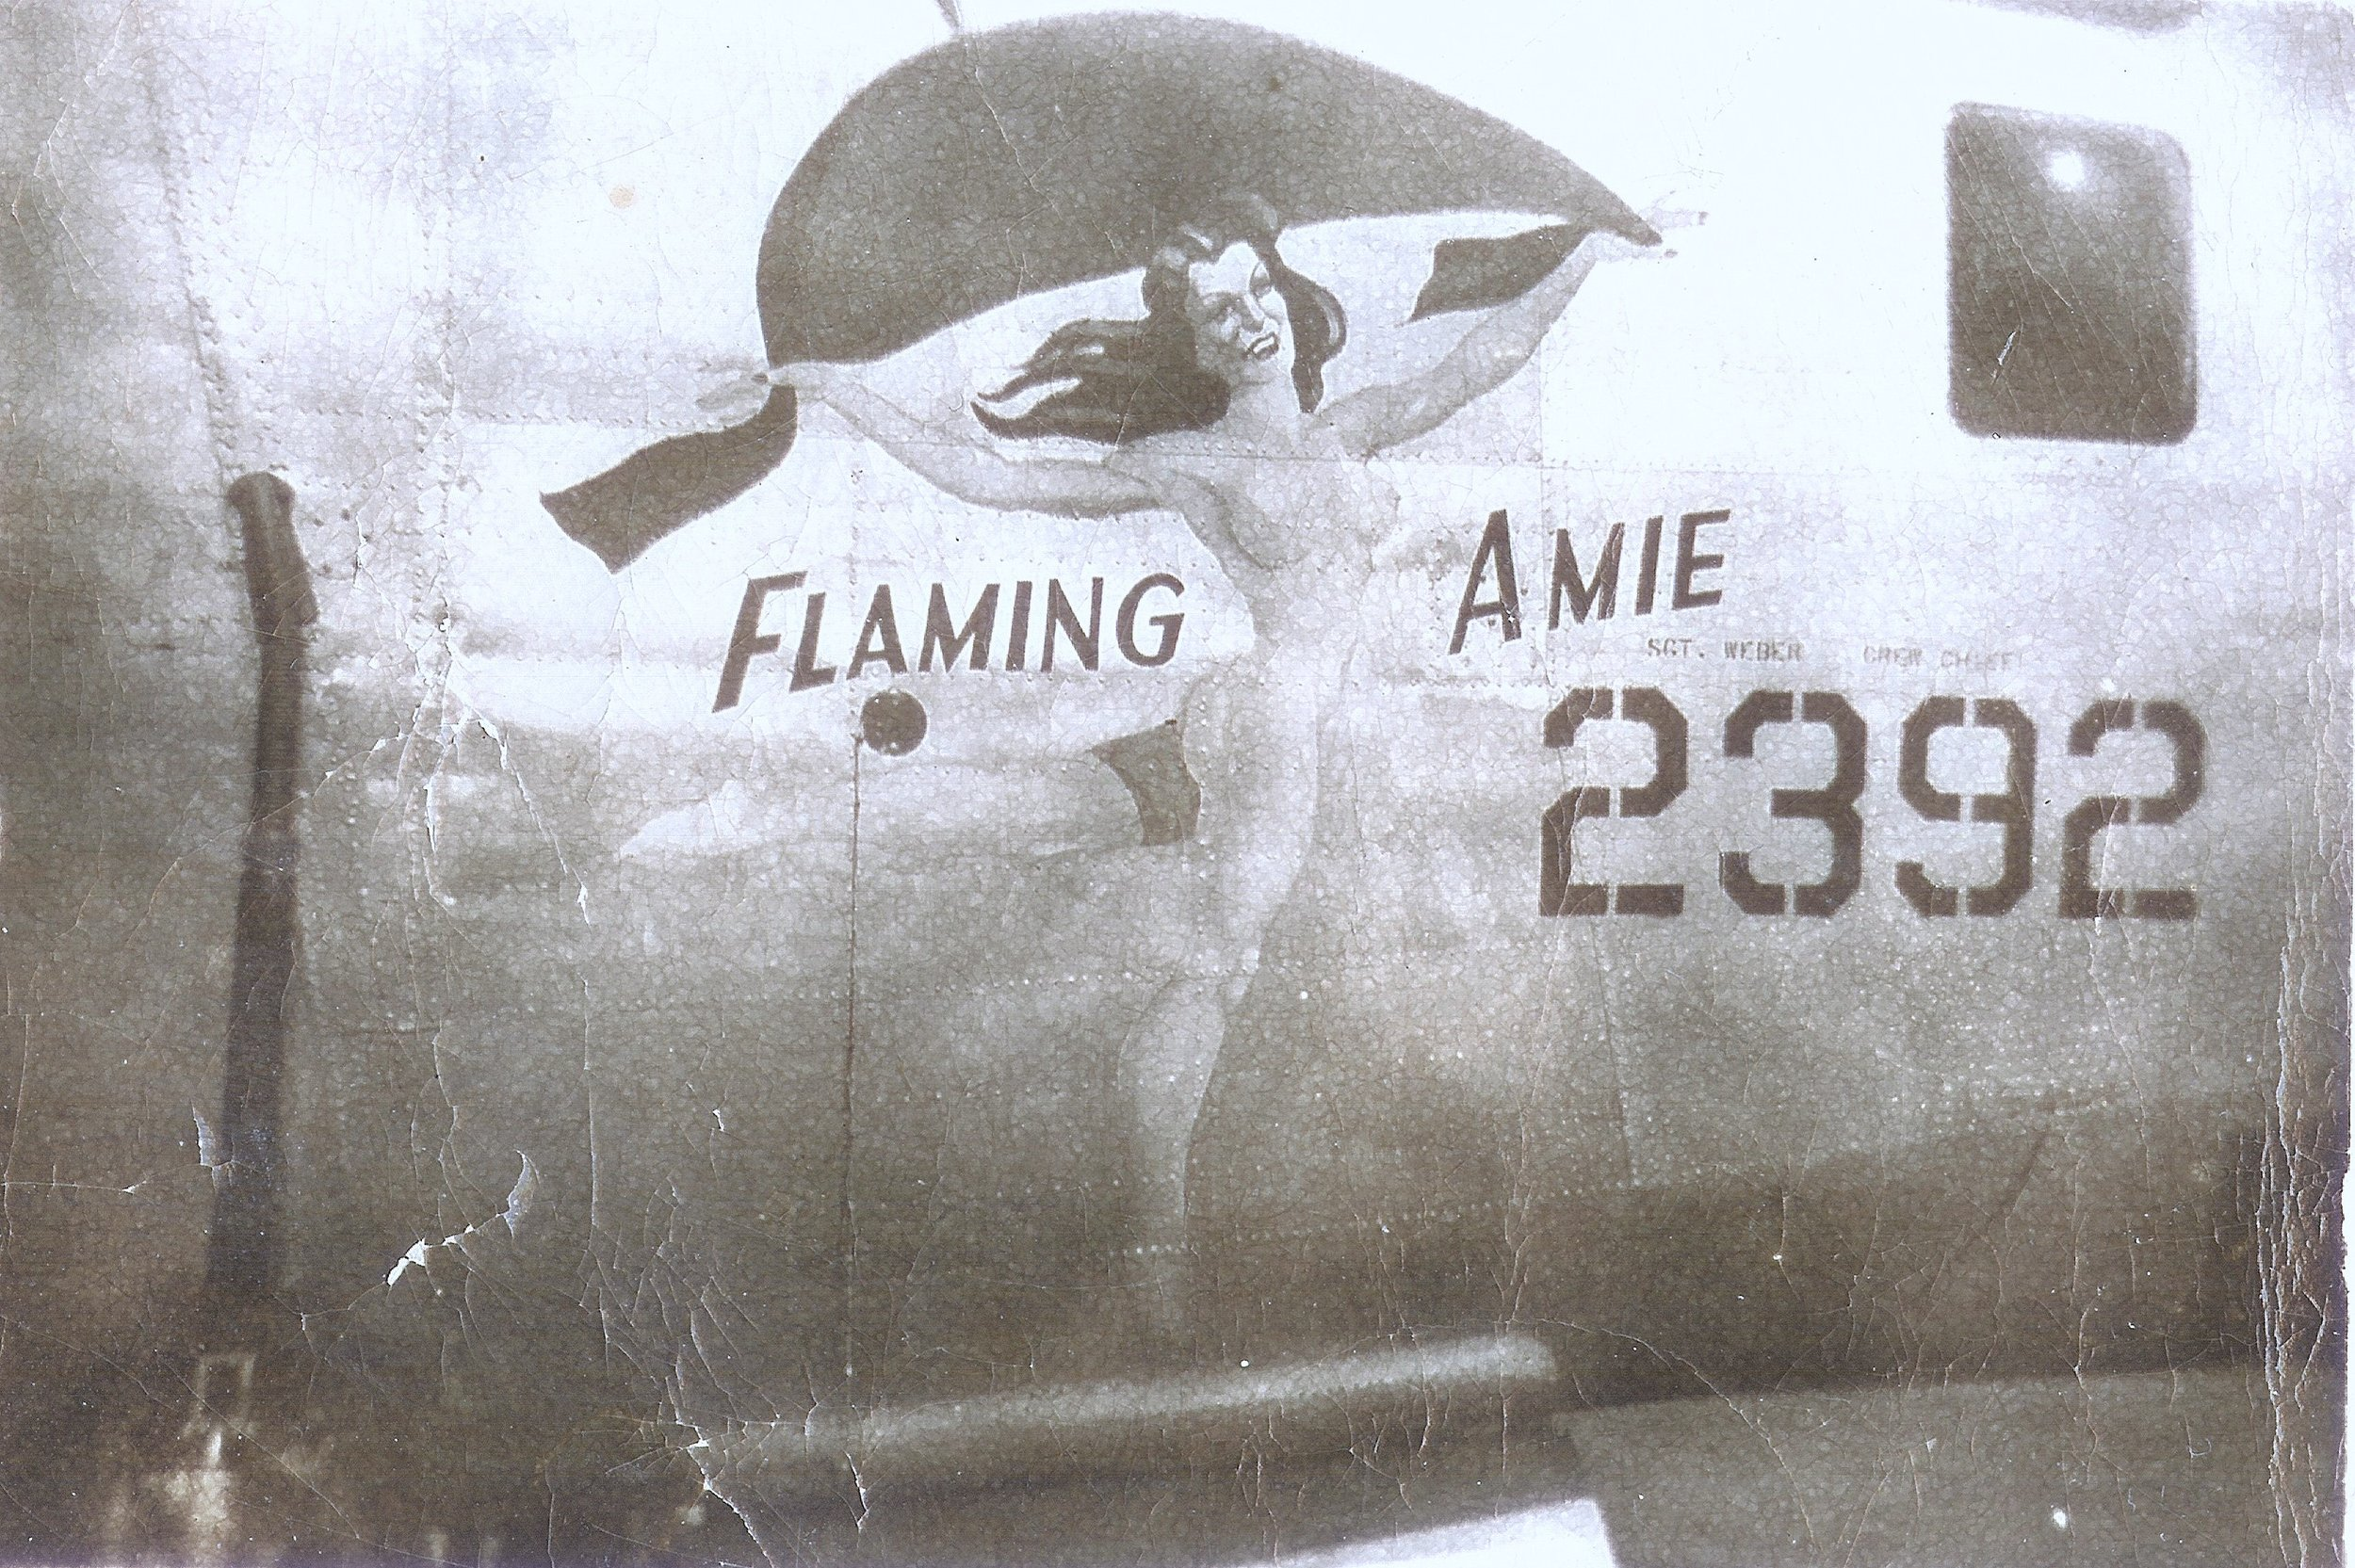 Source Photo of the nose art on my fathers WWII B-24 Bomber.  My father was a 2nd Lt. in the Army Air Corp and served as a bombardier on a B-24 bomber in WW II, in the Asian Theater bombing Japanese military installations on Formosa.